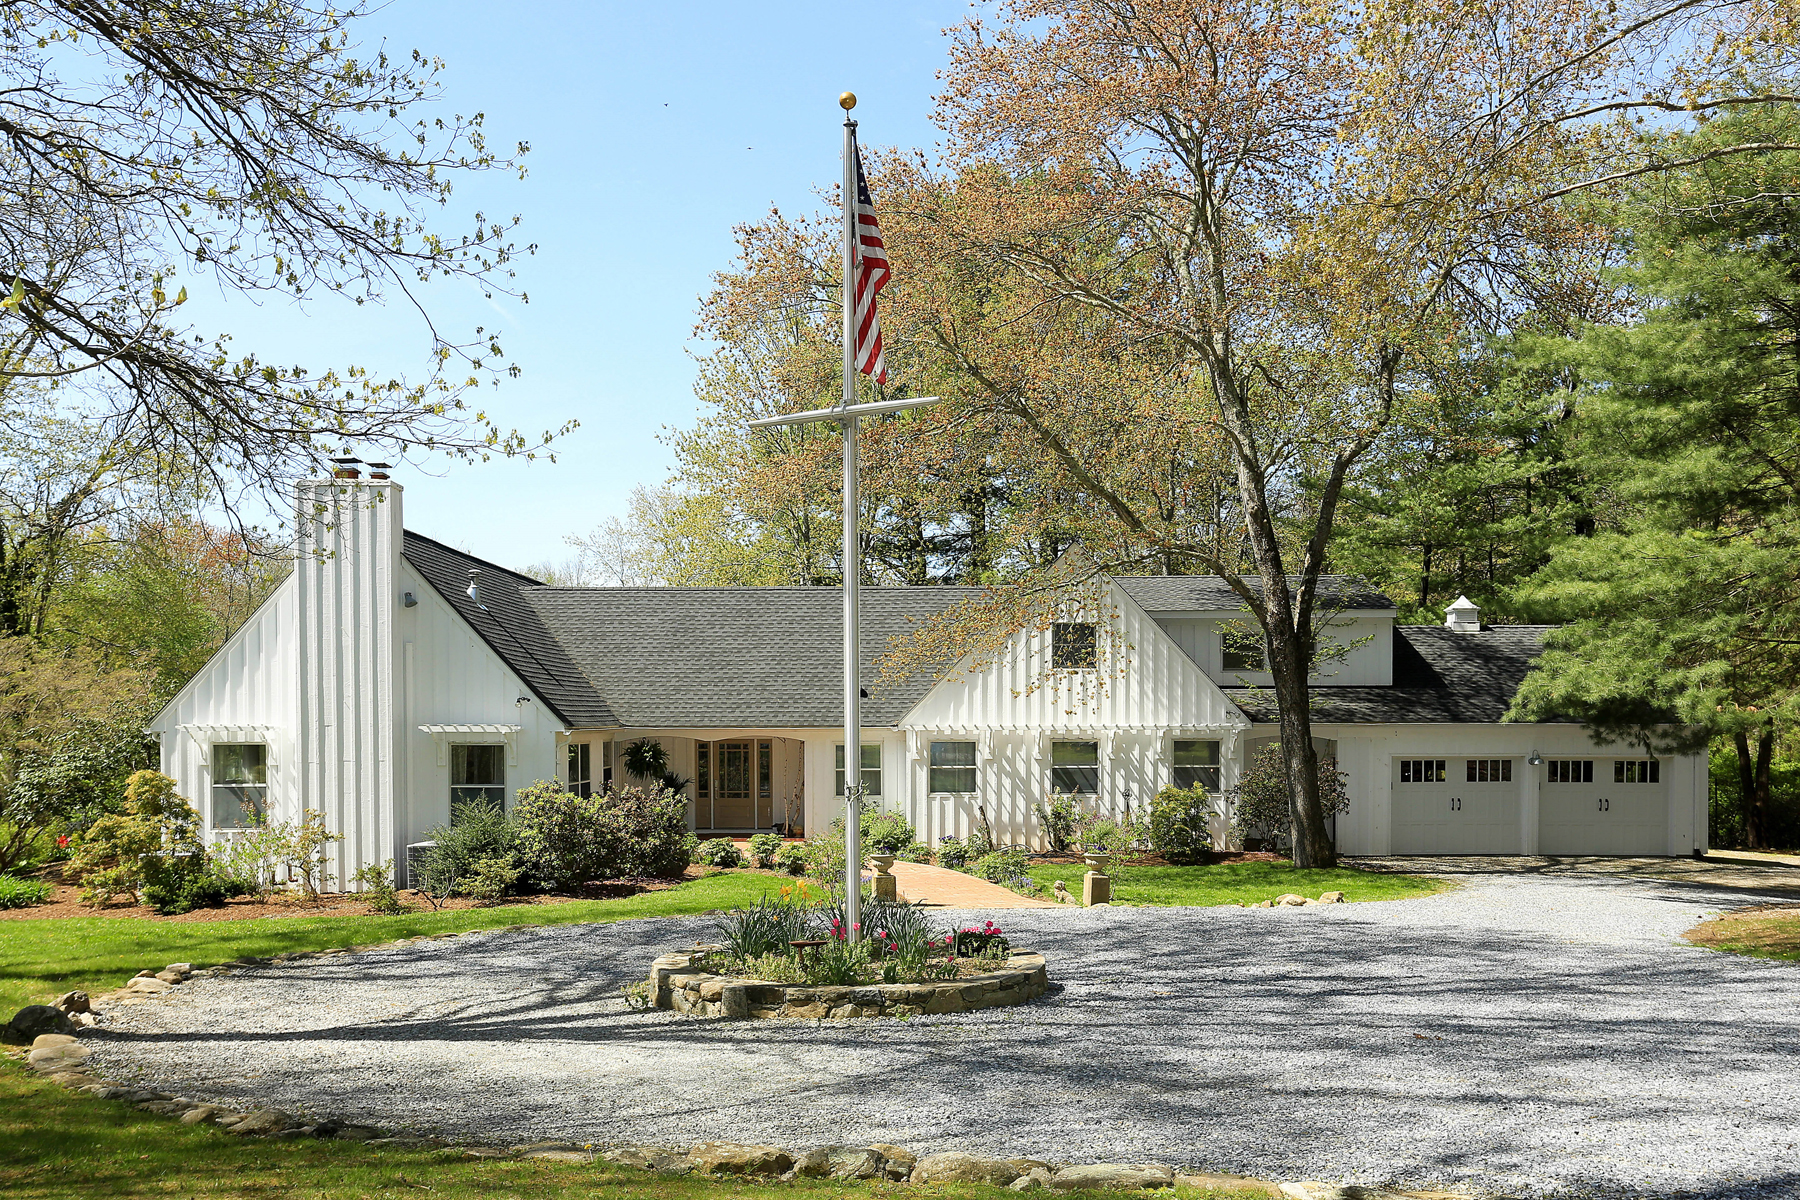 Single Family Home for Sale at Country Retreat 306 North Salem Road Waccabuc, New York 10597 United States